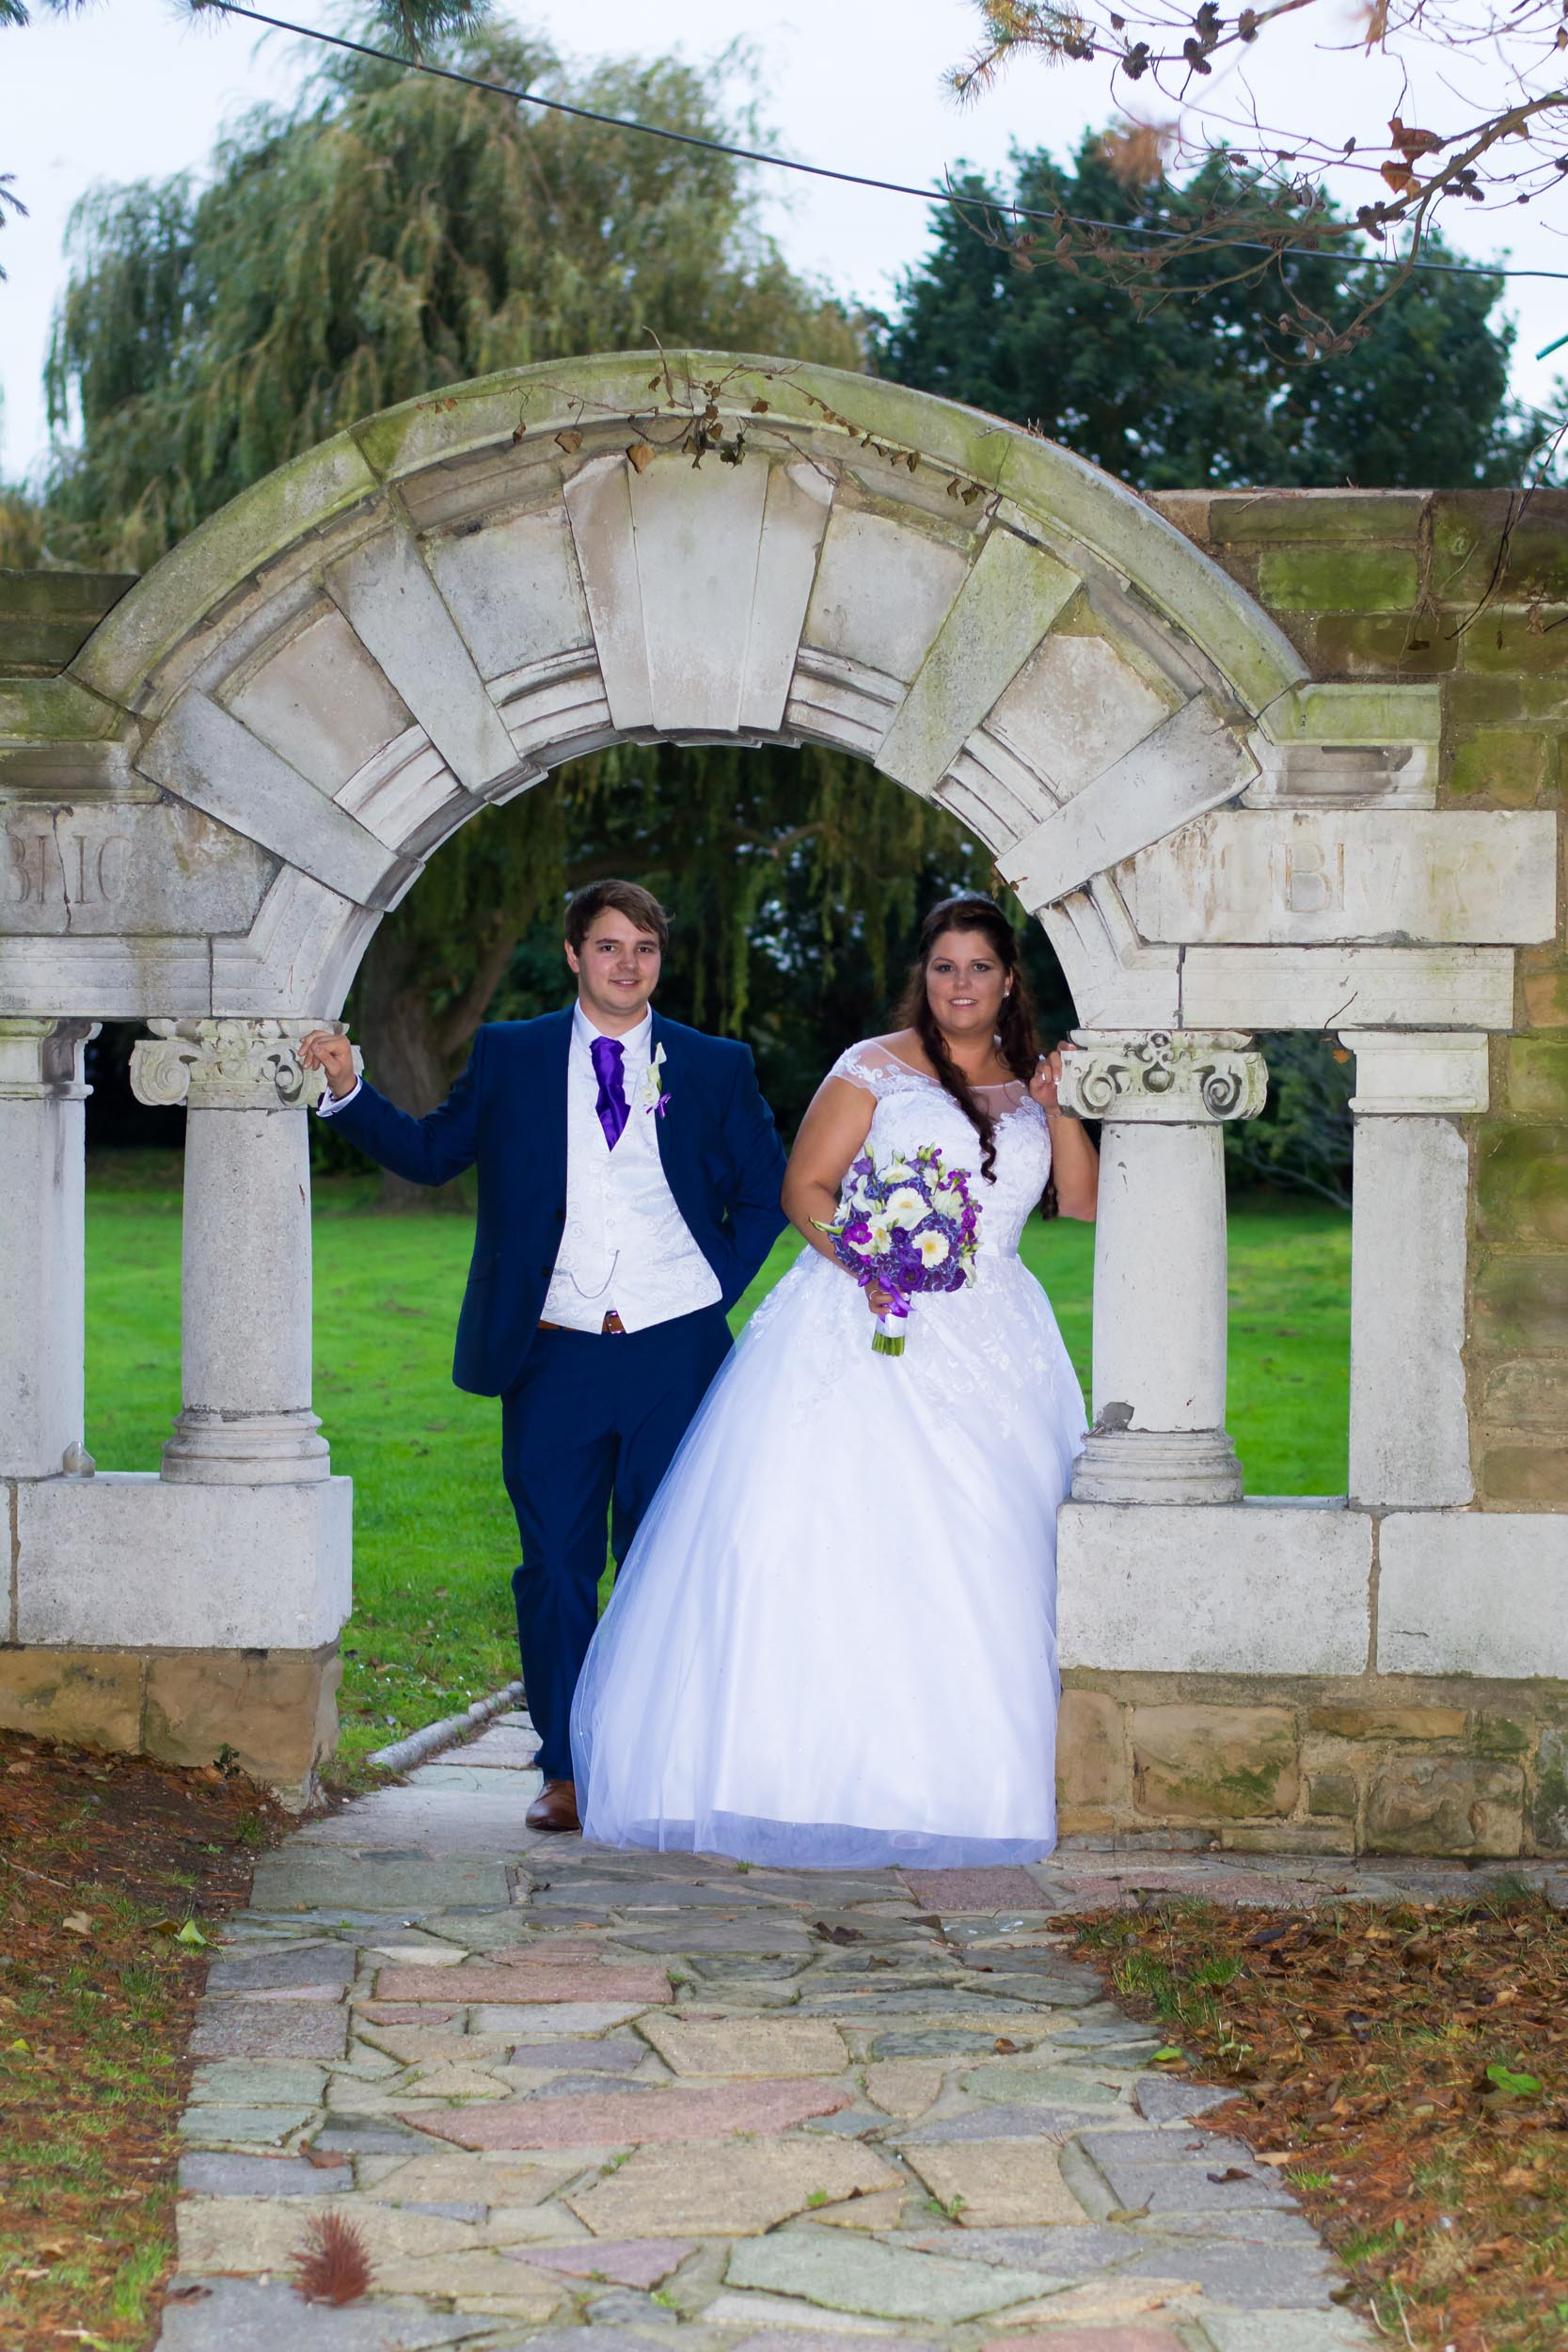 Ye Olde Plough House with bride and groom under one of the arches